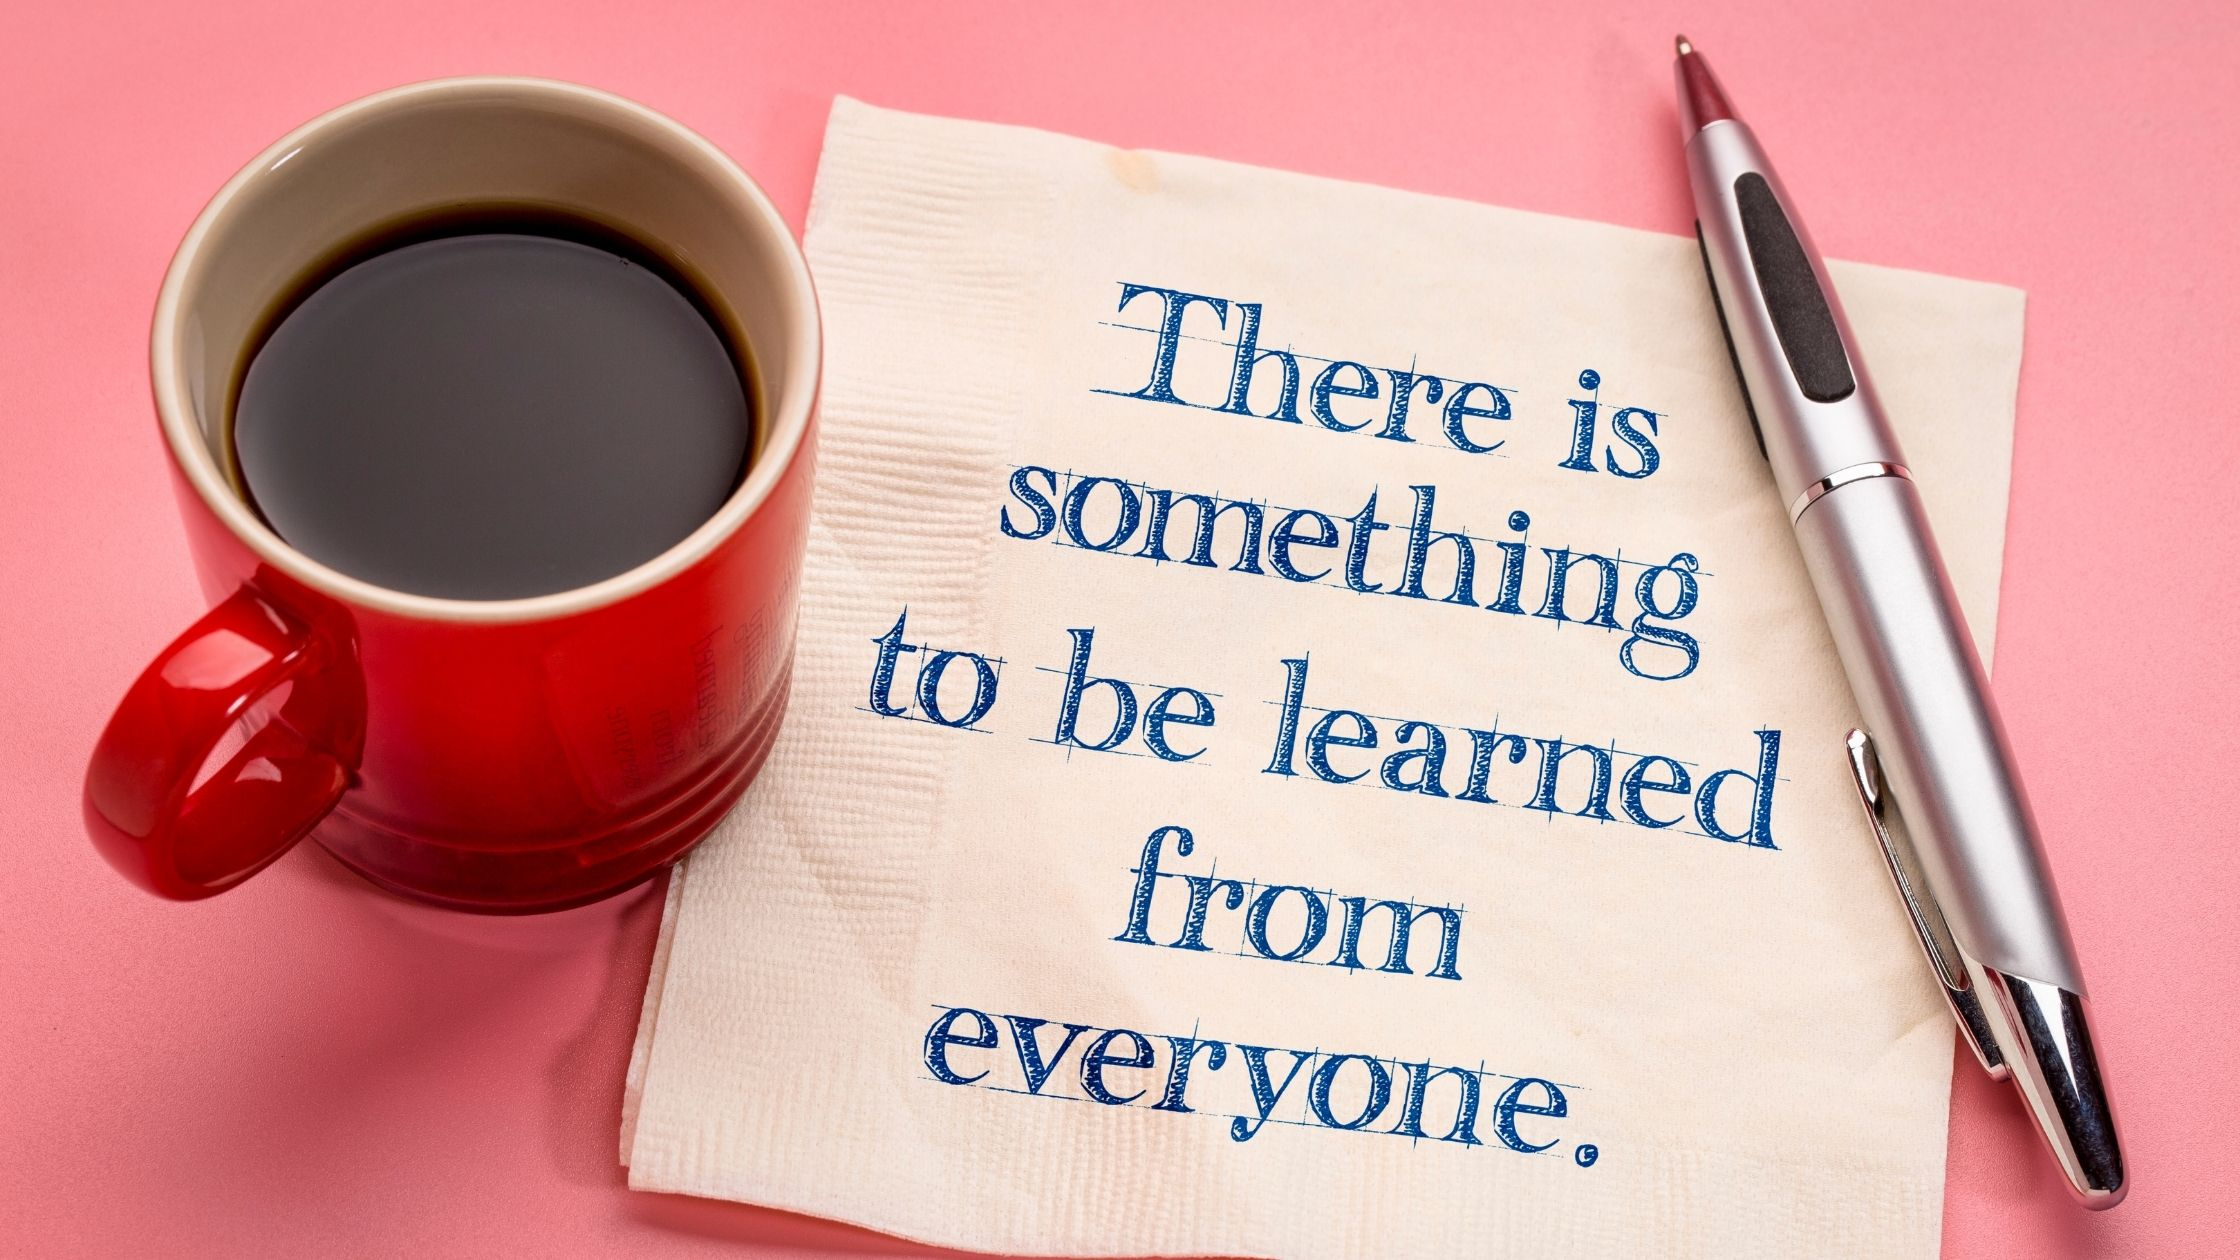 There is something to learn from everyone